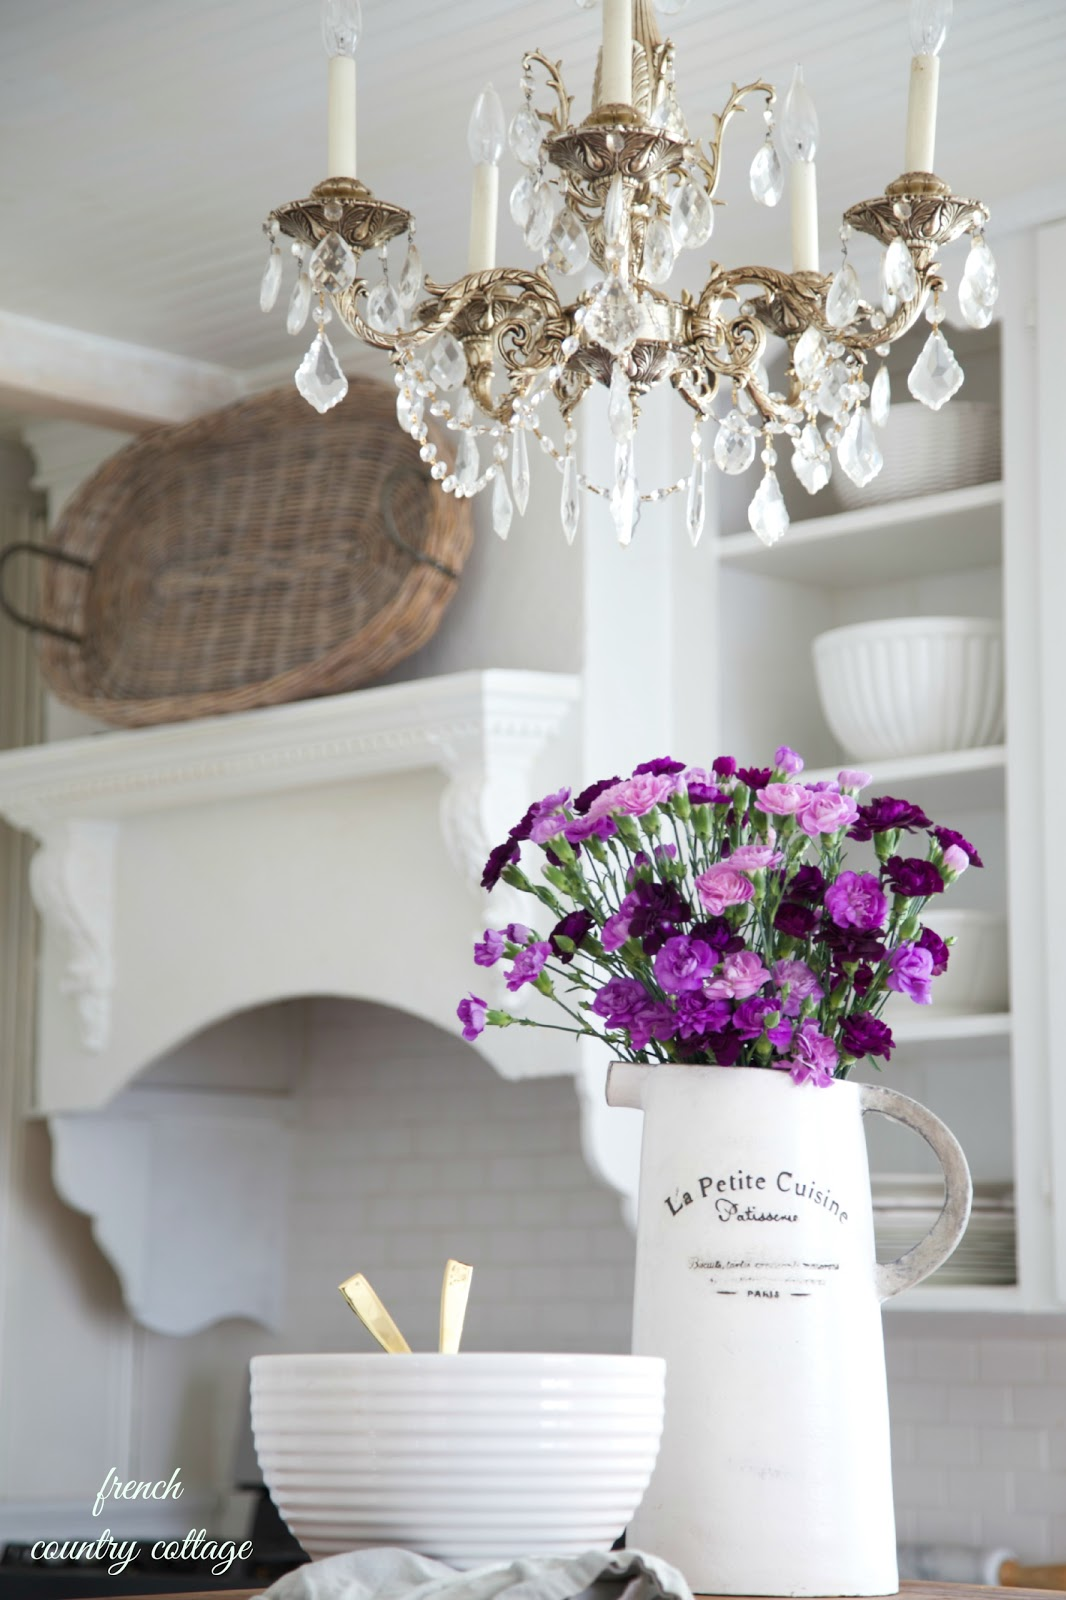 Courtney at french country cottage decorated the kitchen - Fresh Purple Flowers In A Vintage French Inspired Pitcher